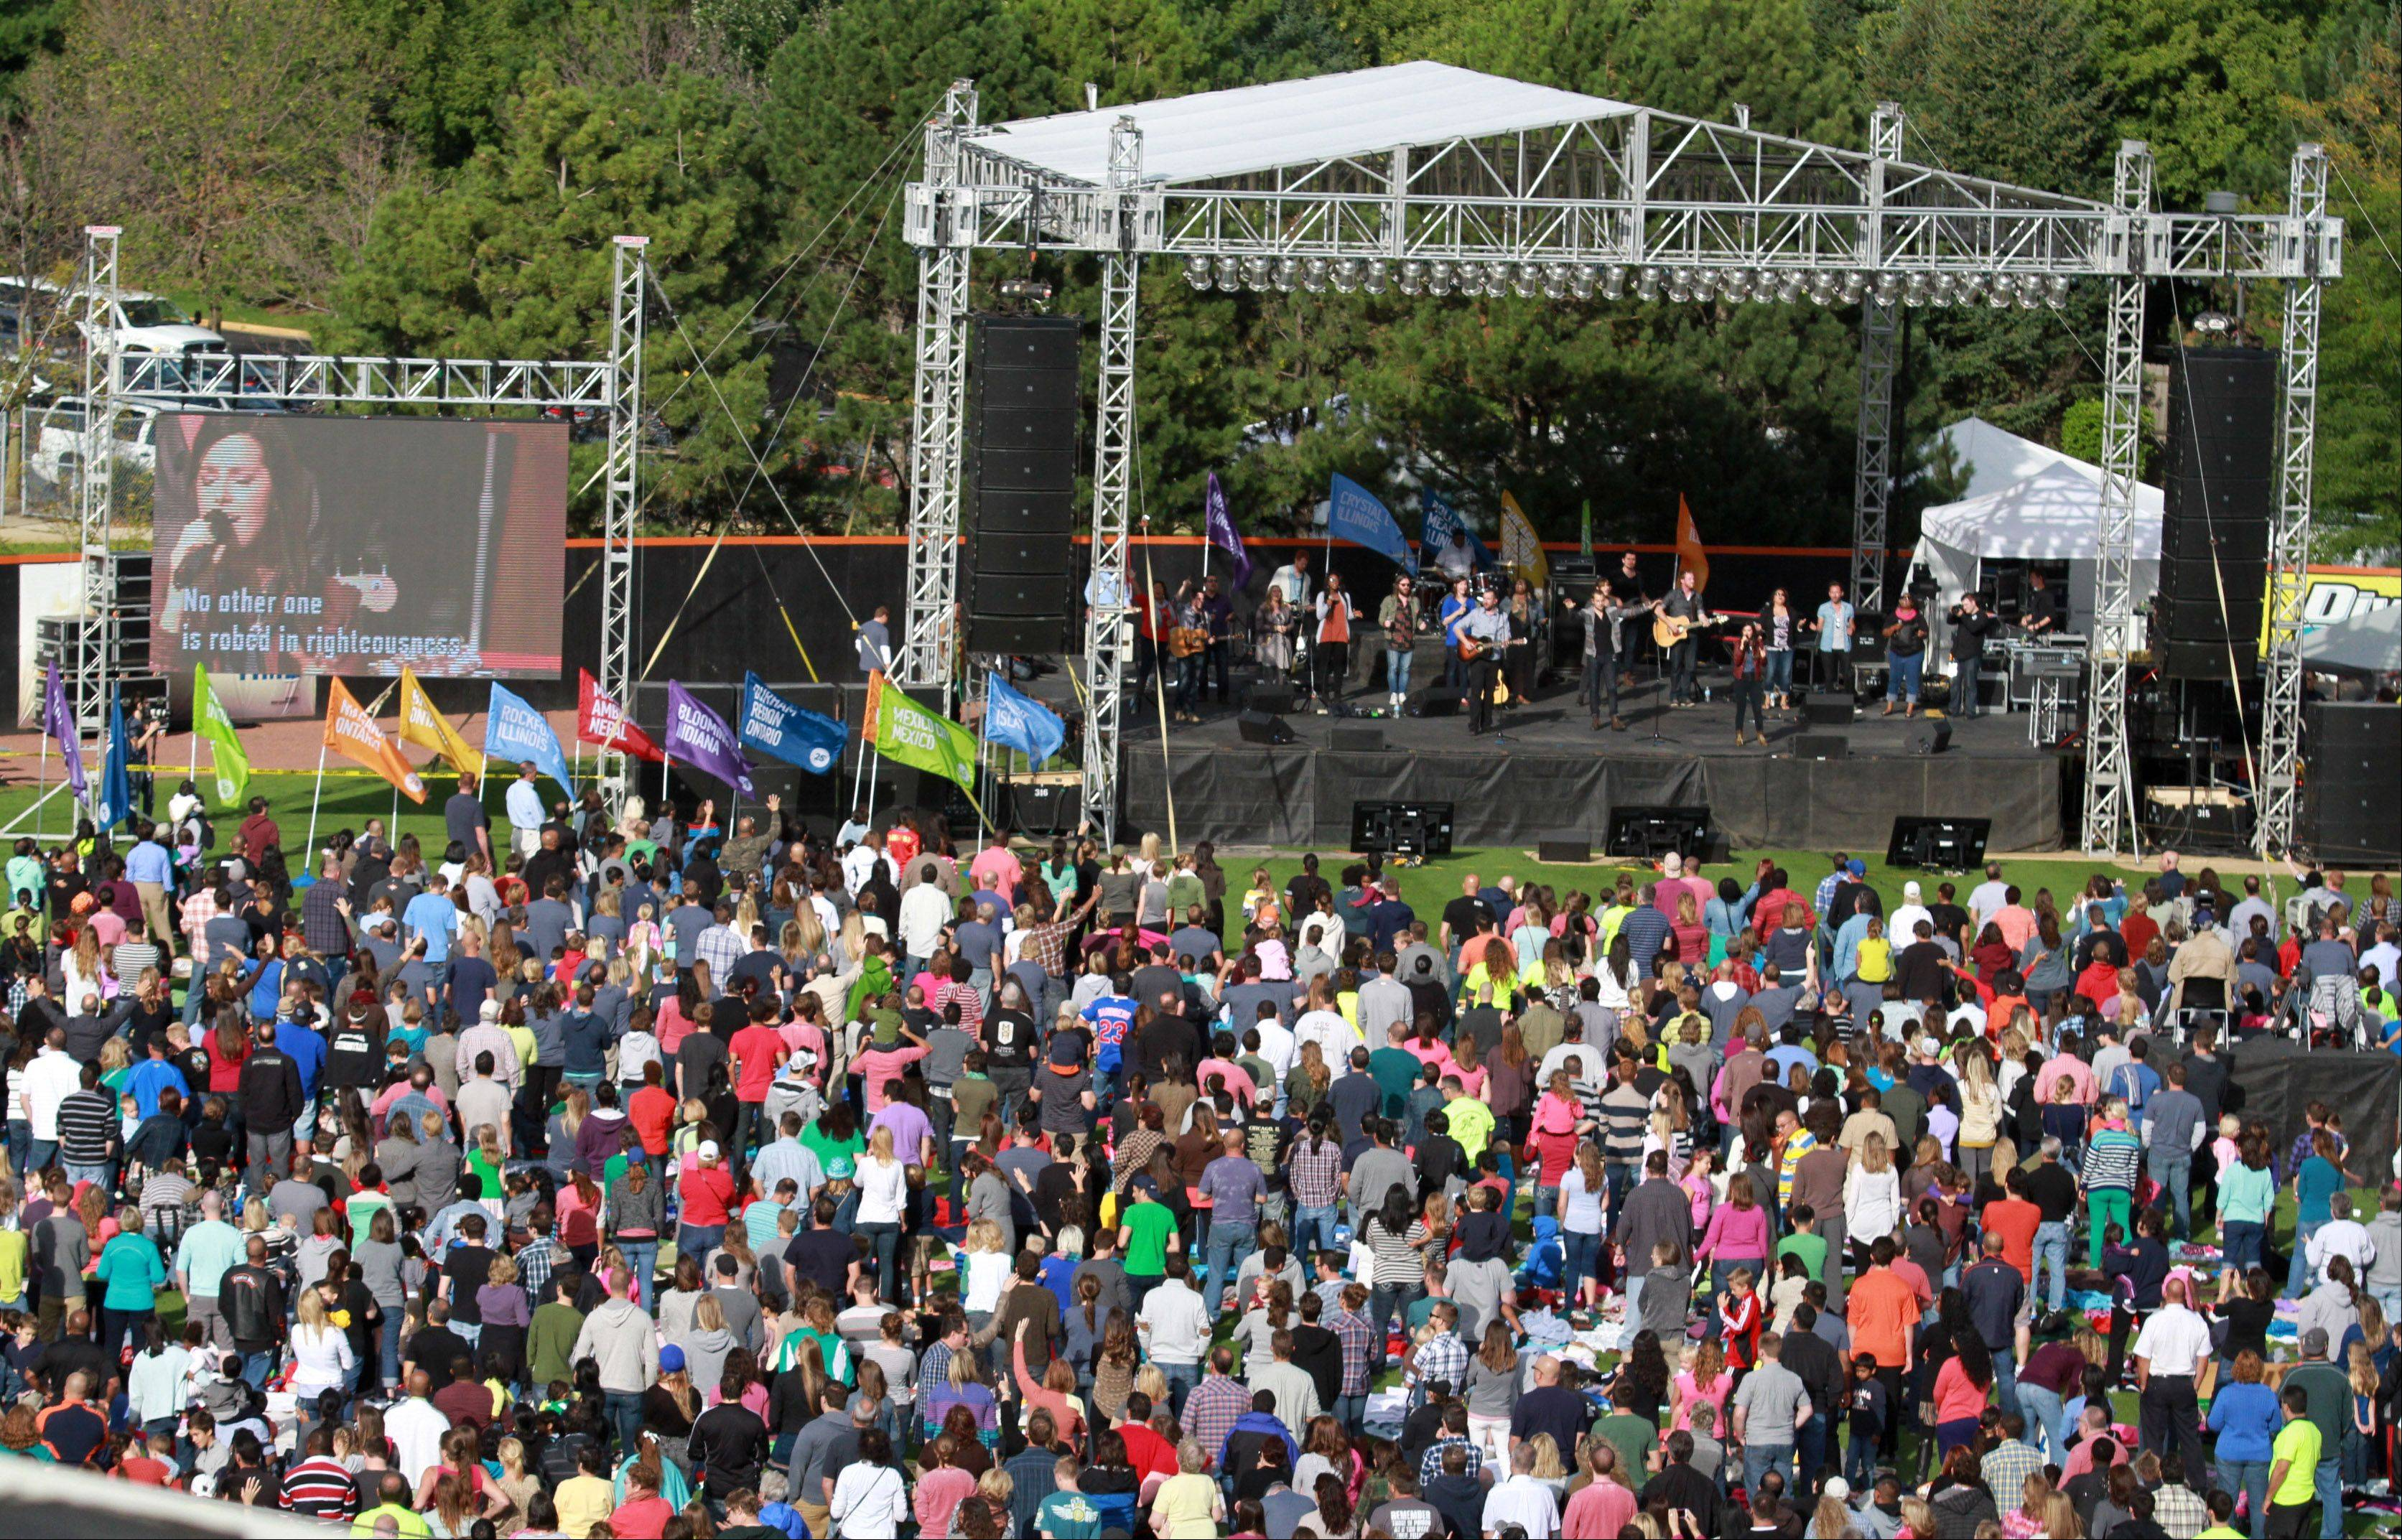 Roughly 3,000 worshippers listen to the Vertical Church Band at Harvest Bible Chapel's 25th anniversary celebration Saturday at Boomers Stadium in Schaumburg.